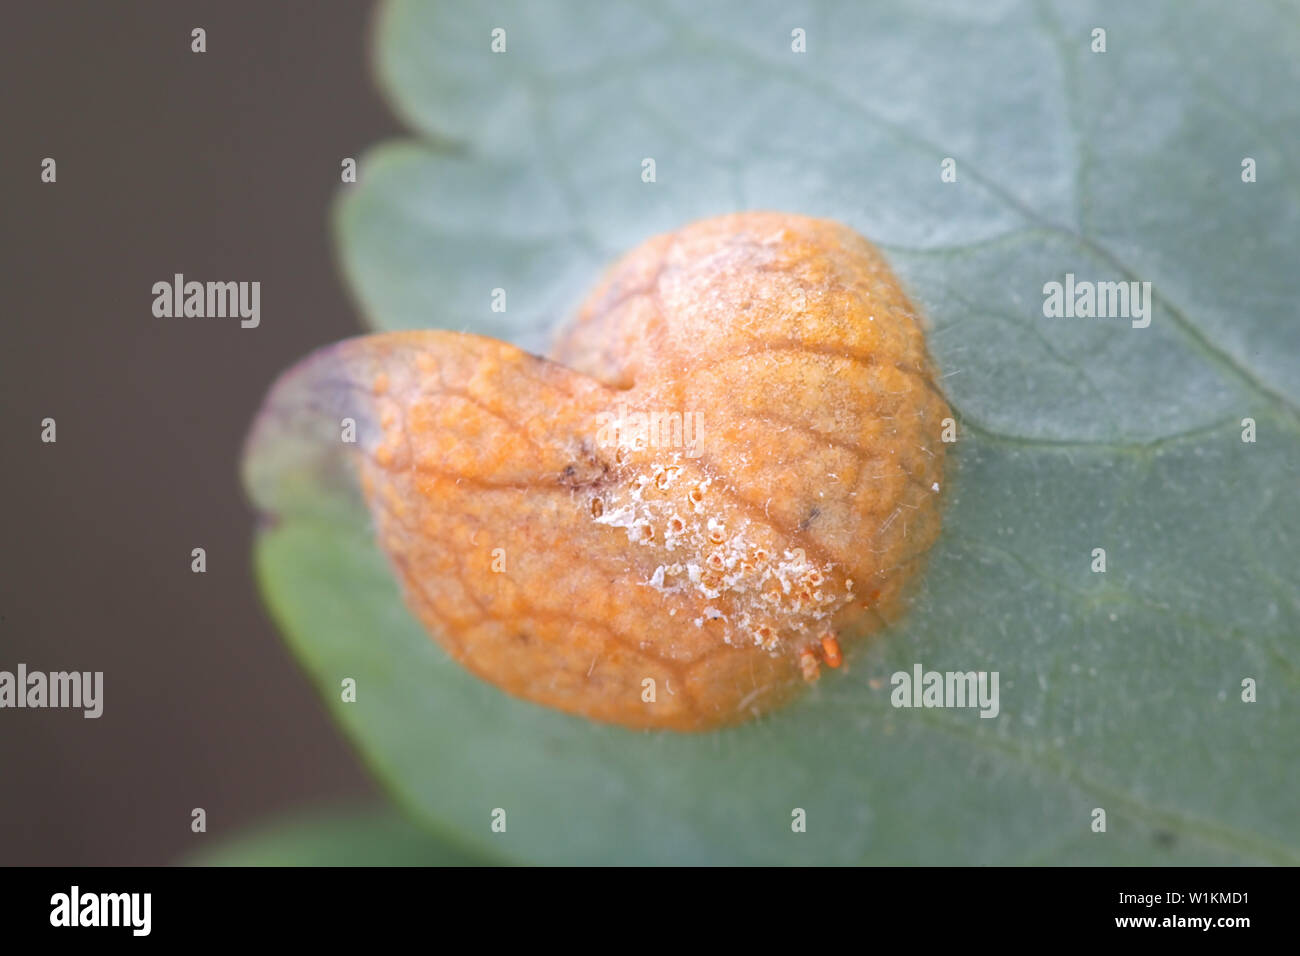 Puccinia agrostidis, known as the brown rust gall, a fungal plant pathogen - Stock Image